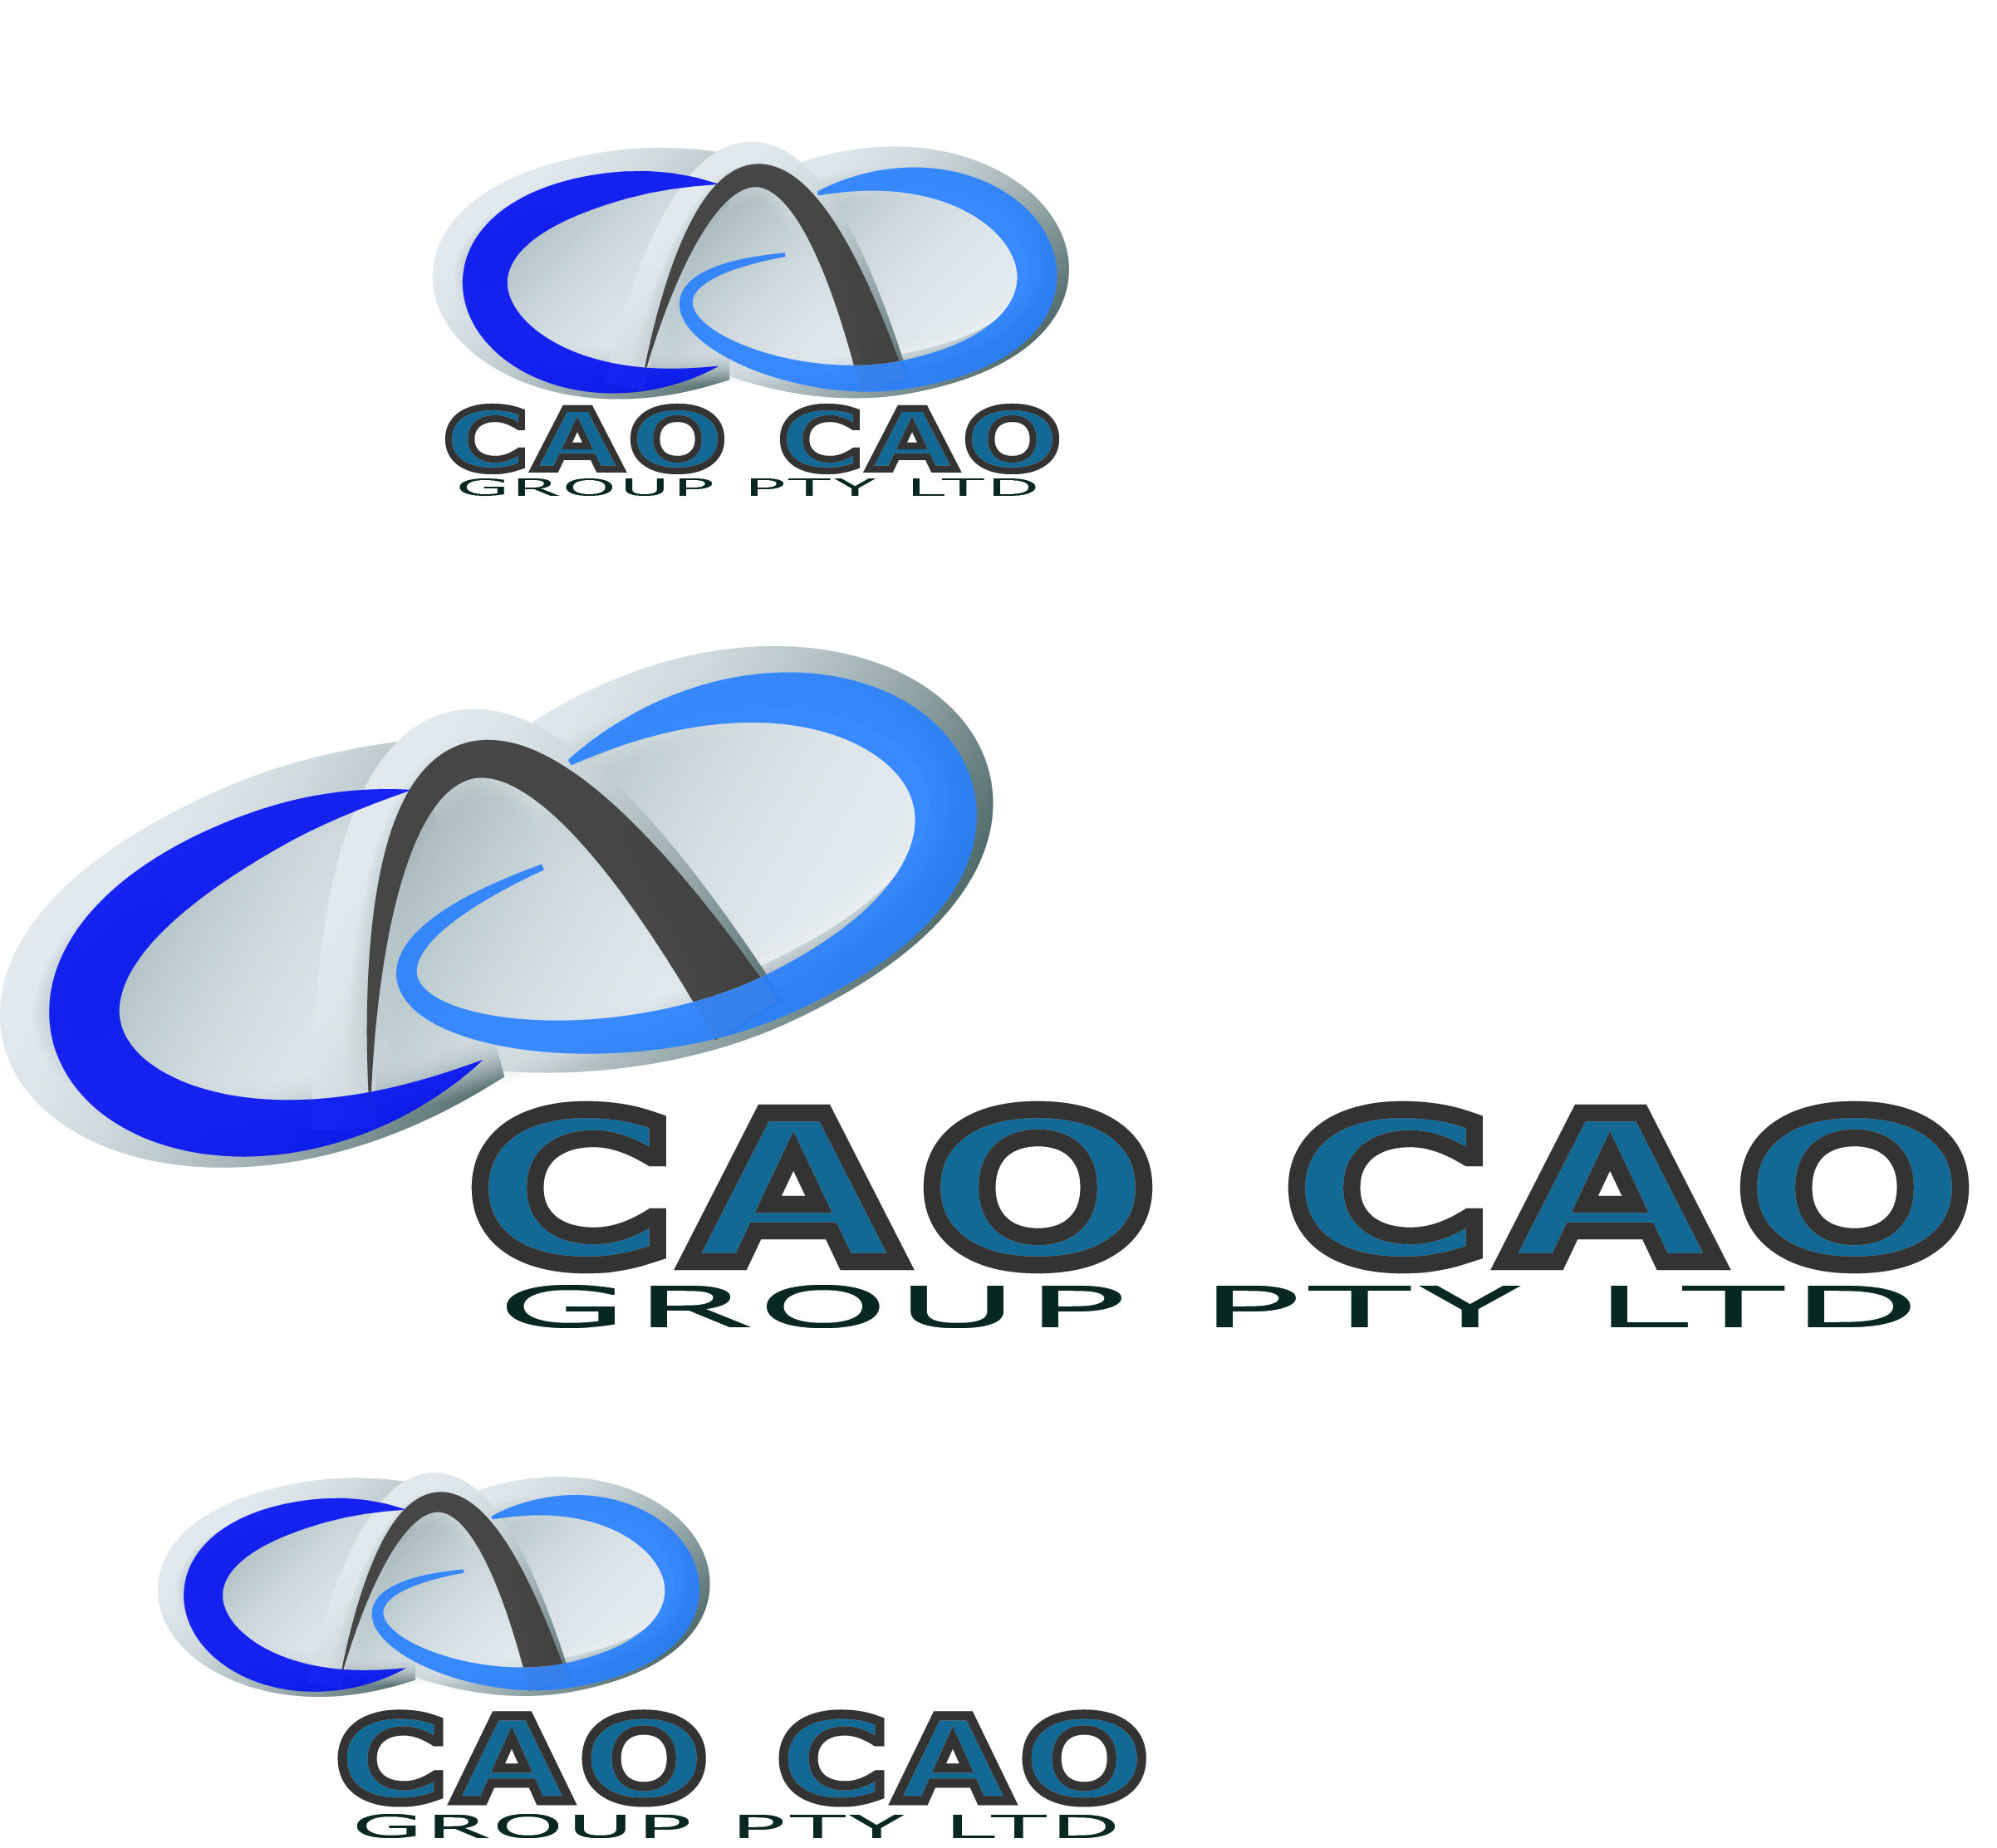 Logo Design by Susan Palmer - Entry No. 157 in the Logo Design Contest cao cao group pty ltd Logo Design.